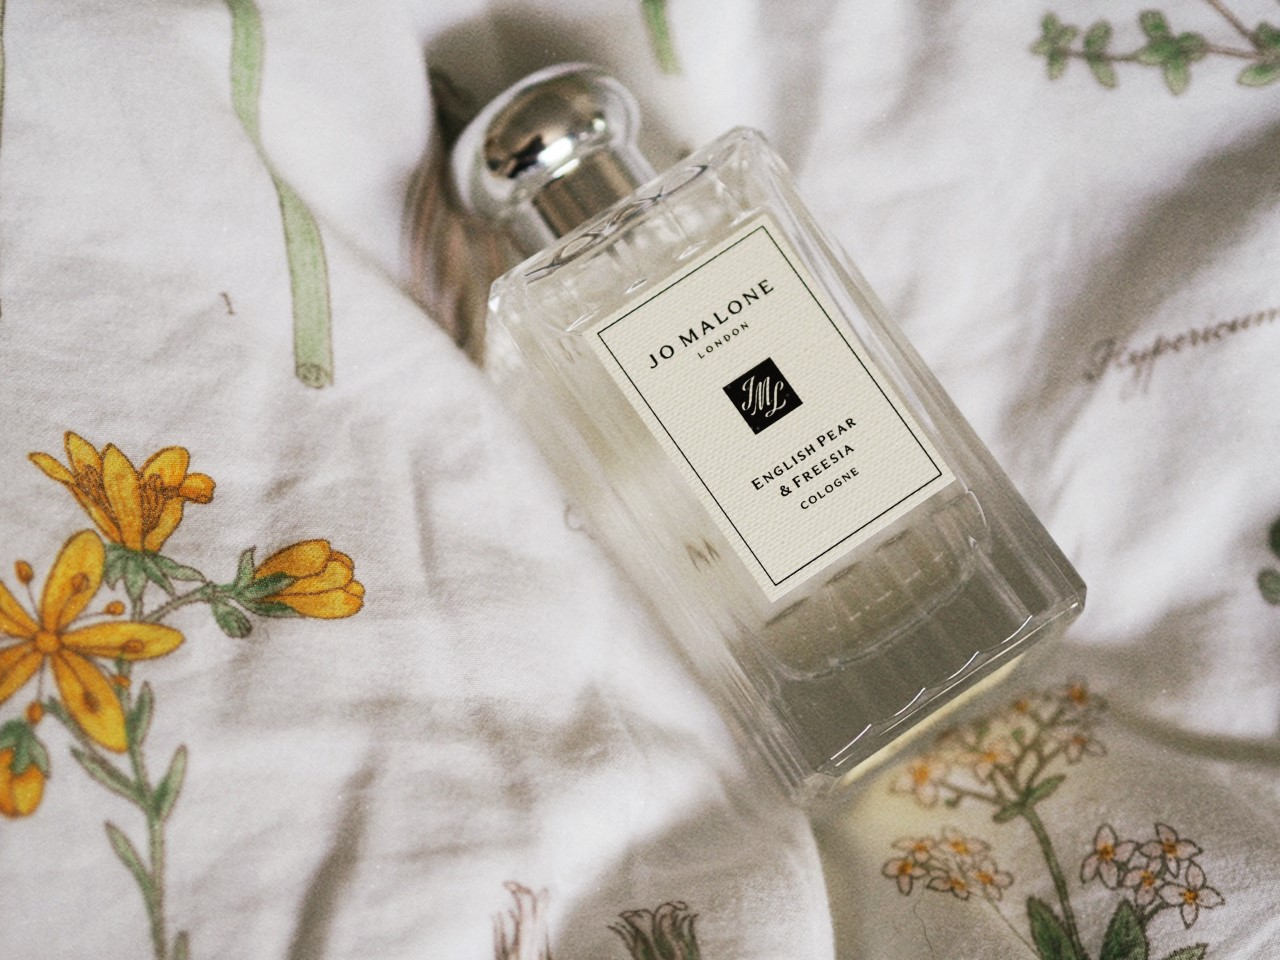 Jo Malone 'English Pear & Freesia' Cologne Review 2021 limited edition